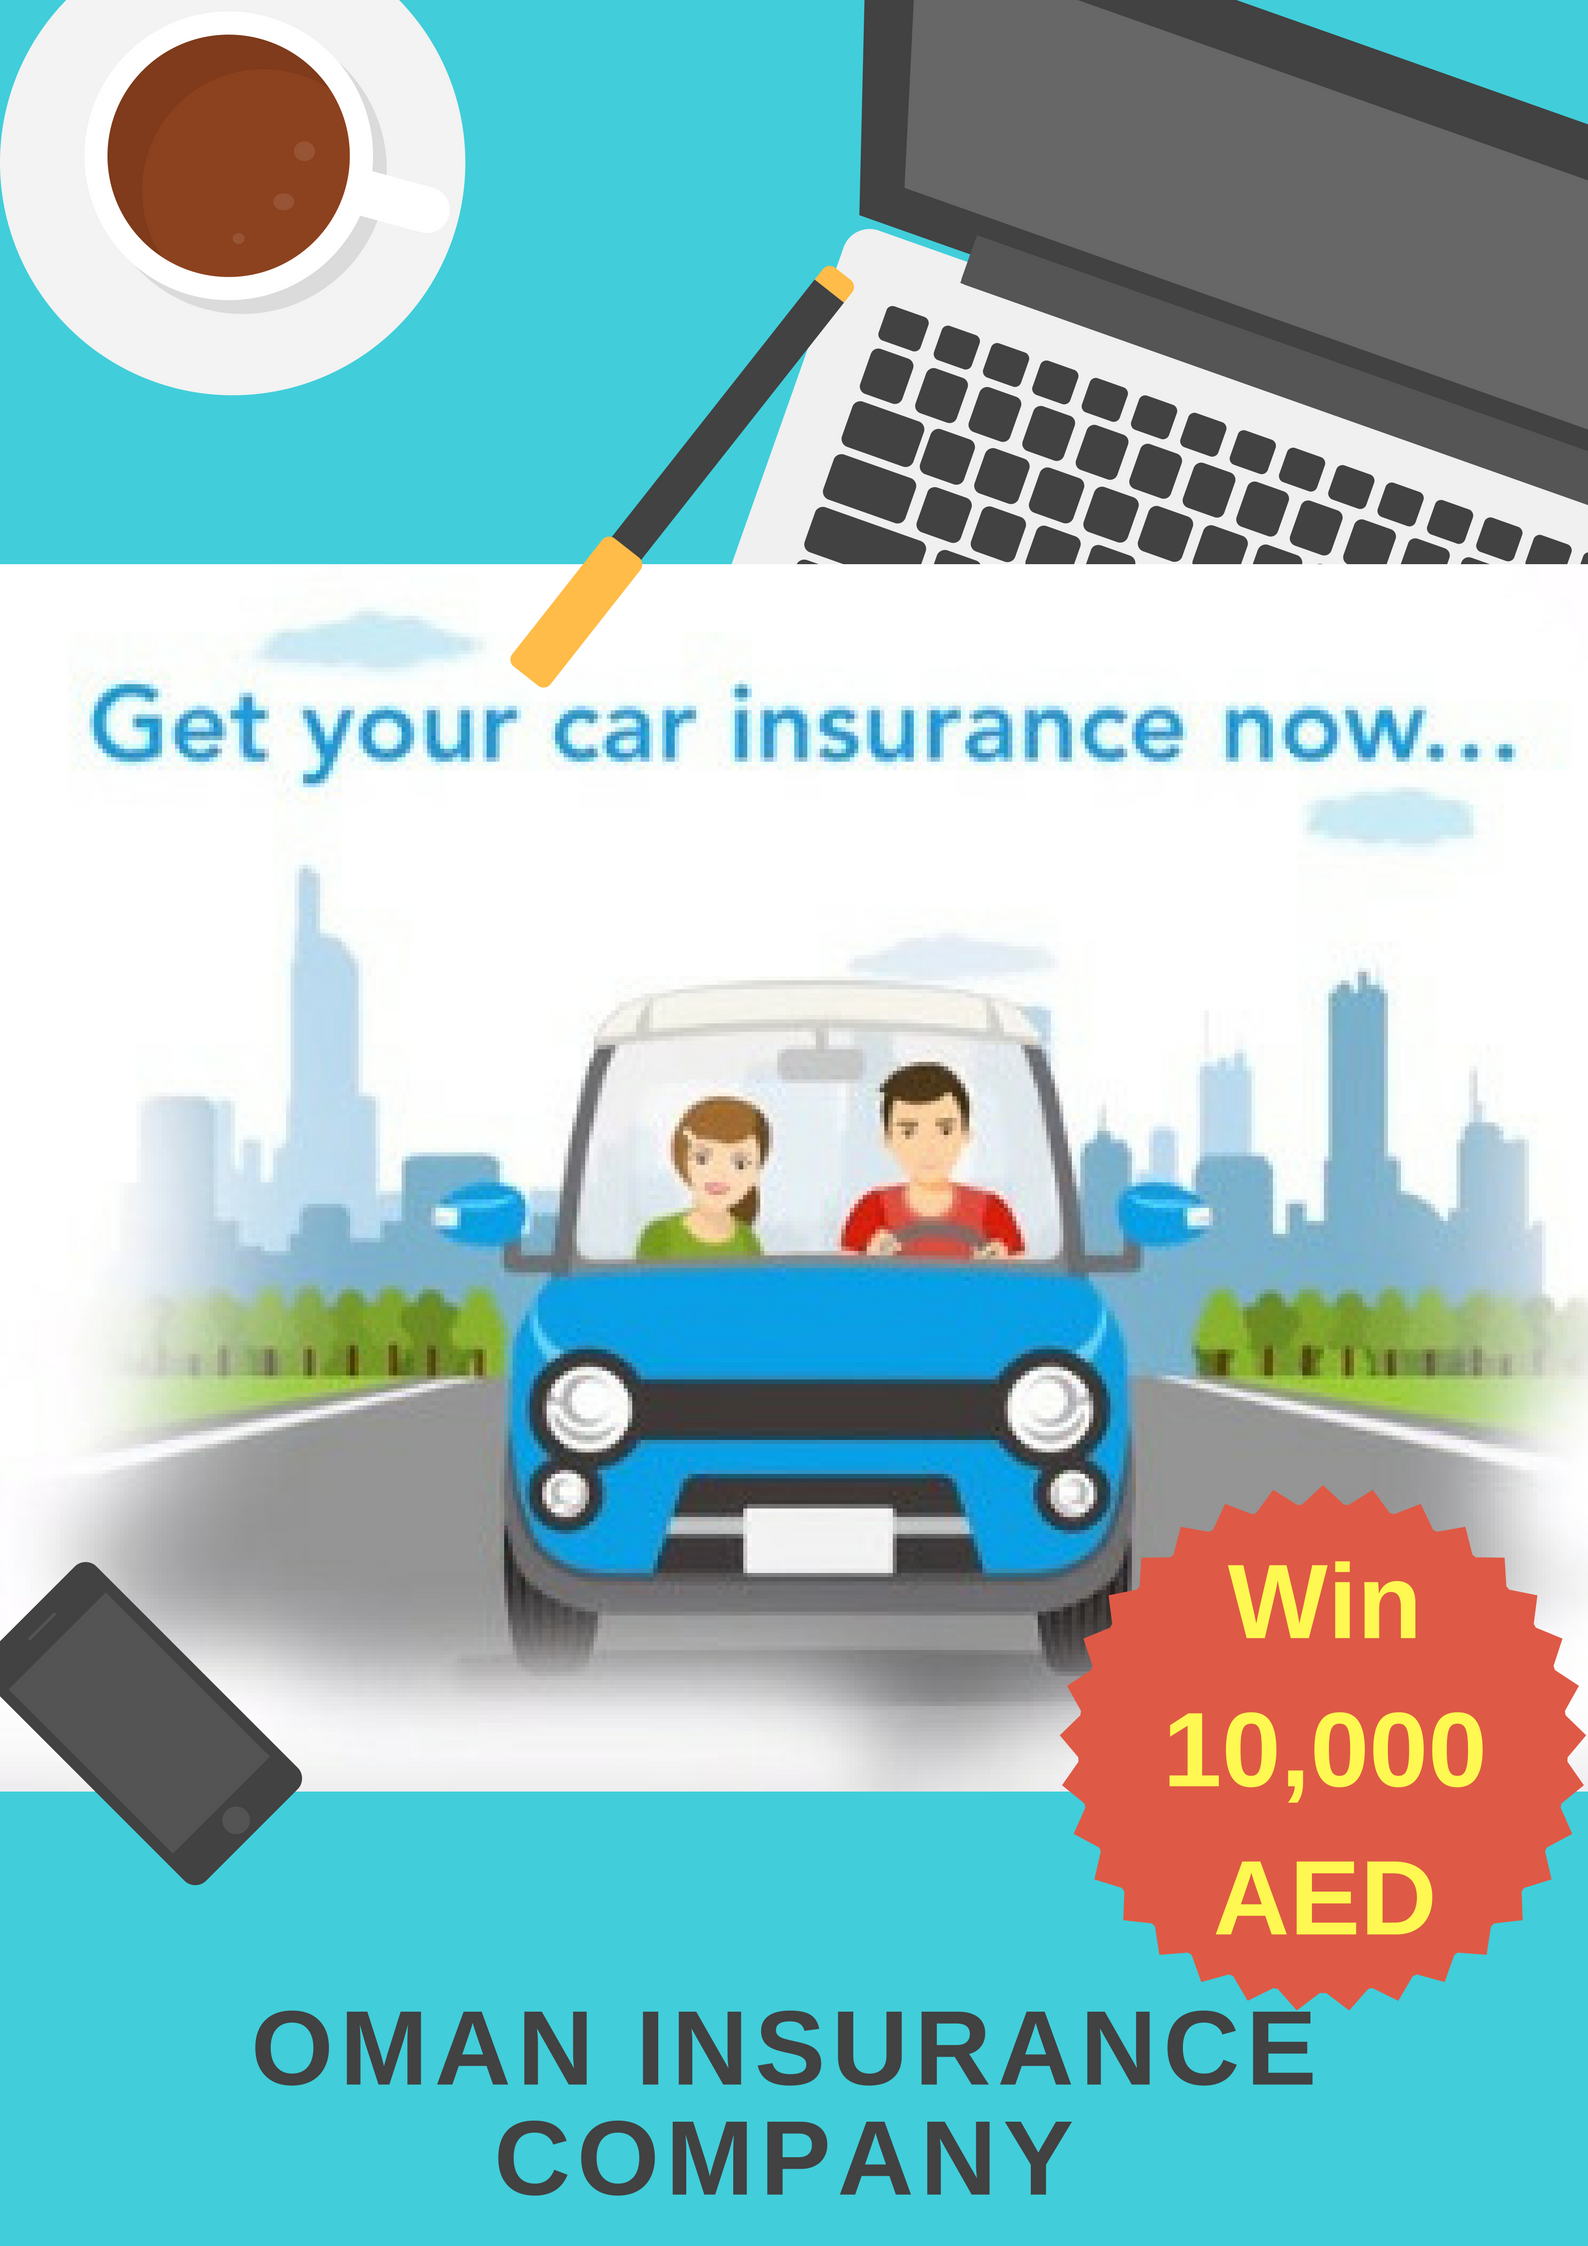 Buy car insurance online from Oman Insurance Company and